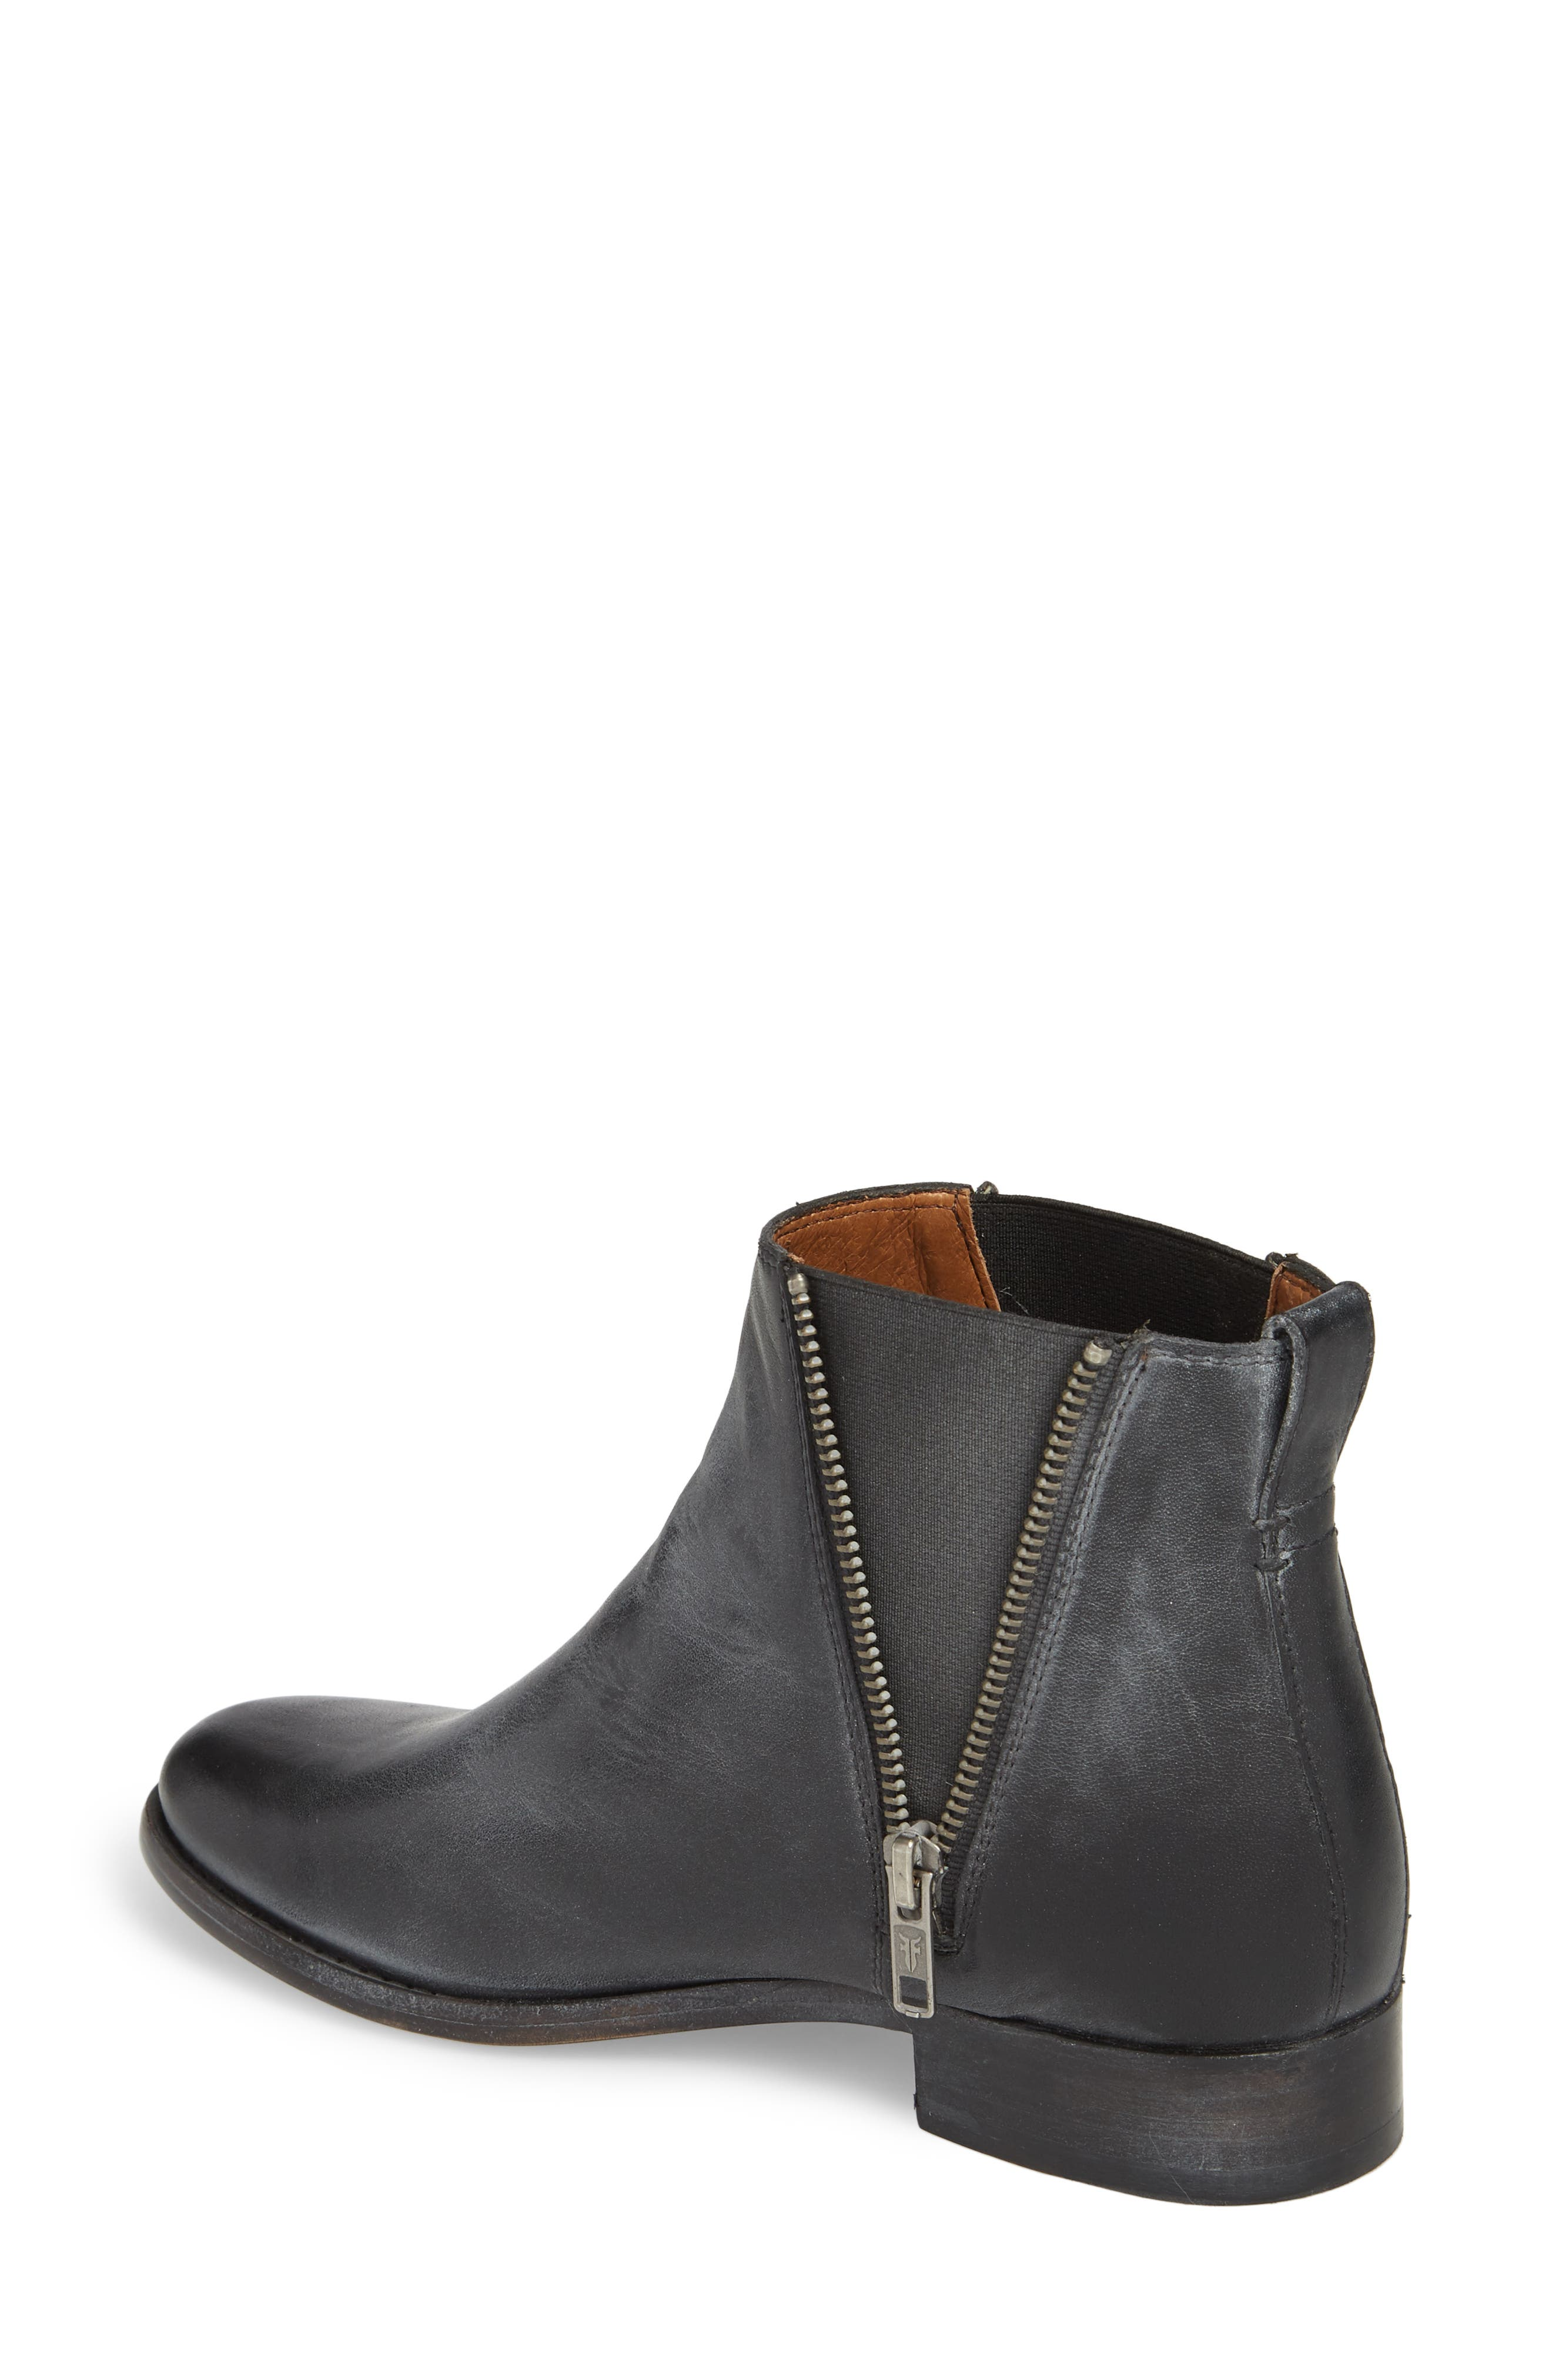 FRYE, Carly Chelsea Boot, Alternate thumbnail 2, color, BLACK ANTIQUED LEATHER